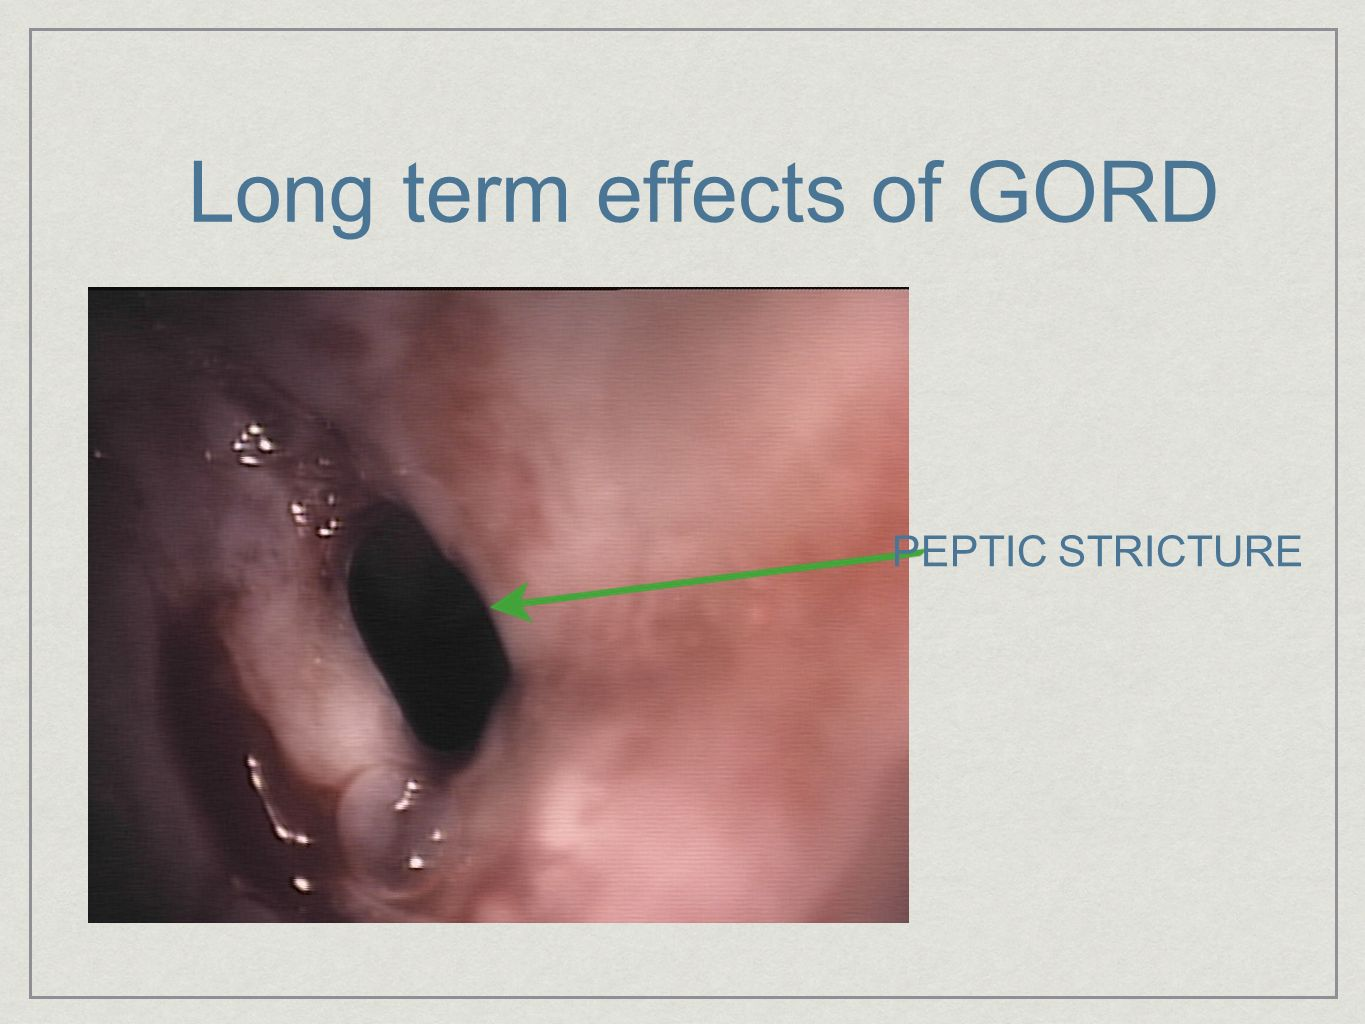 Long term effects of GORD